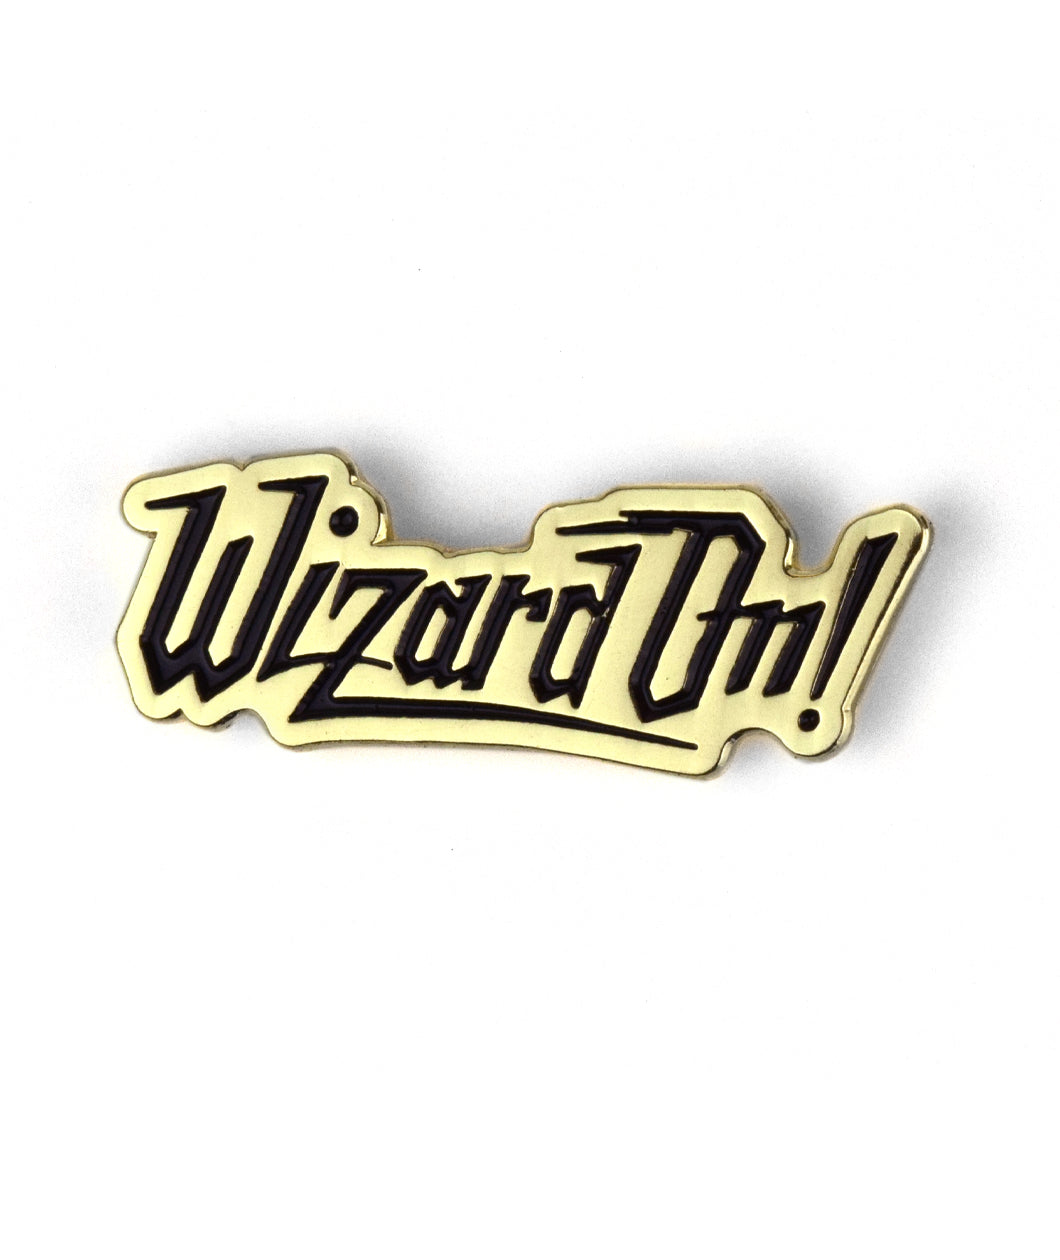 Potterless Wizard On! Enamel Pin